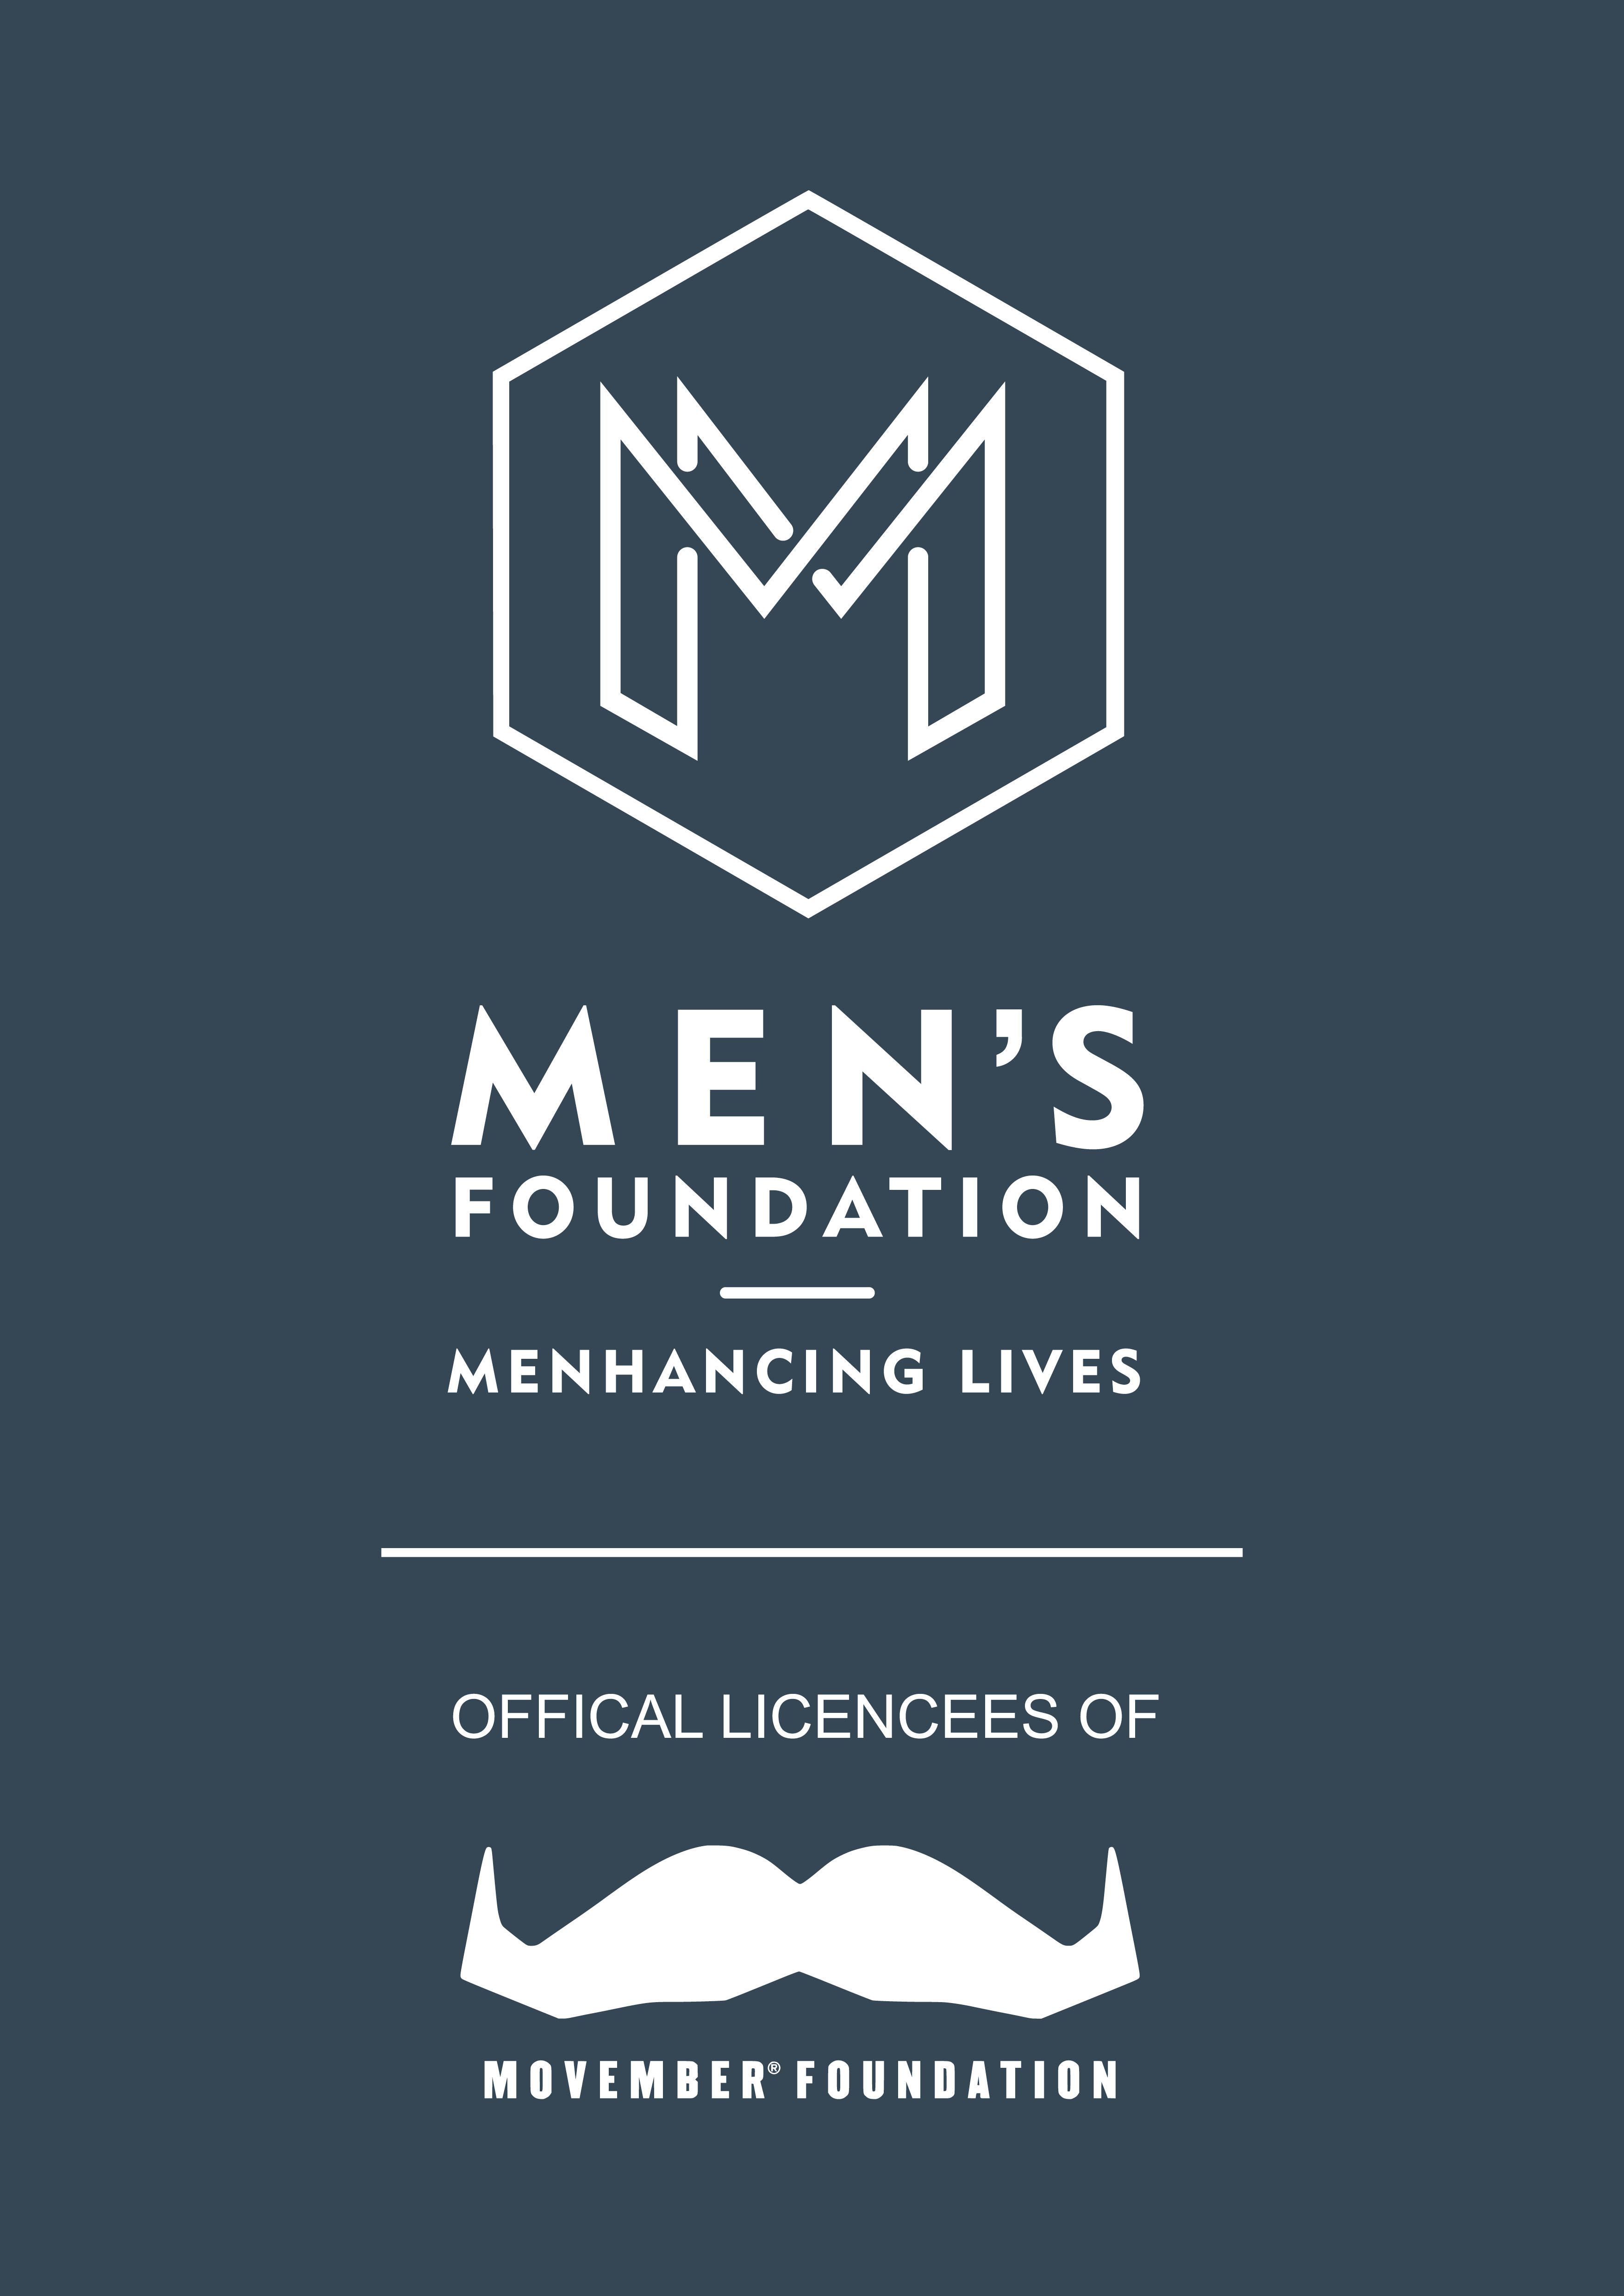 Men's Foundation Of South Africa